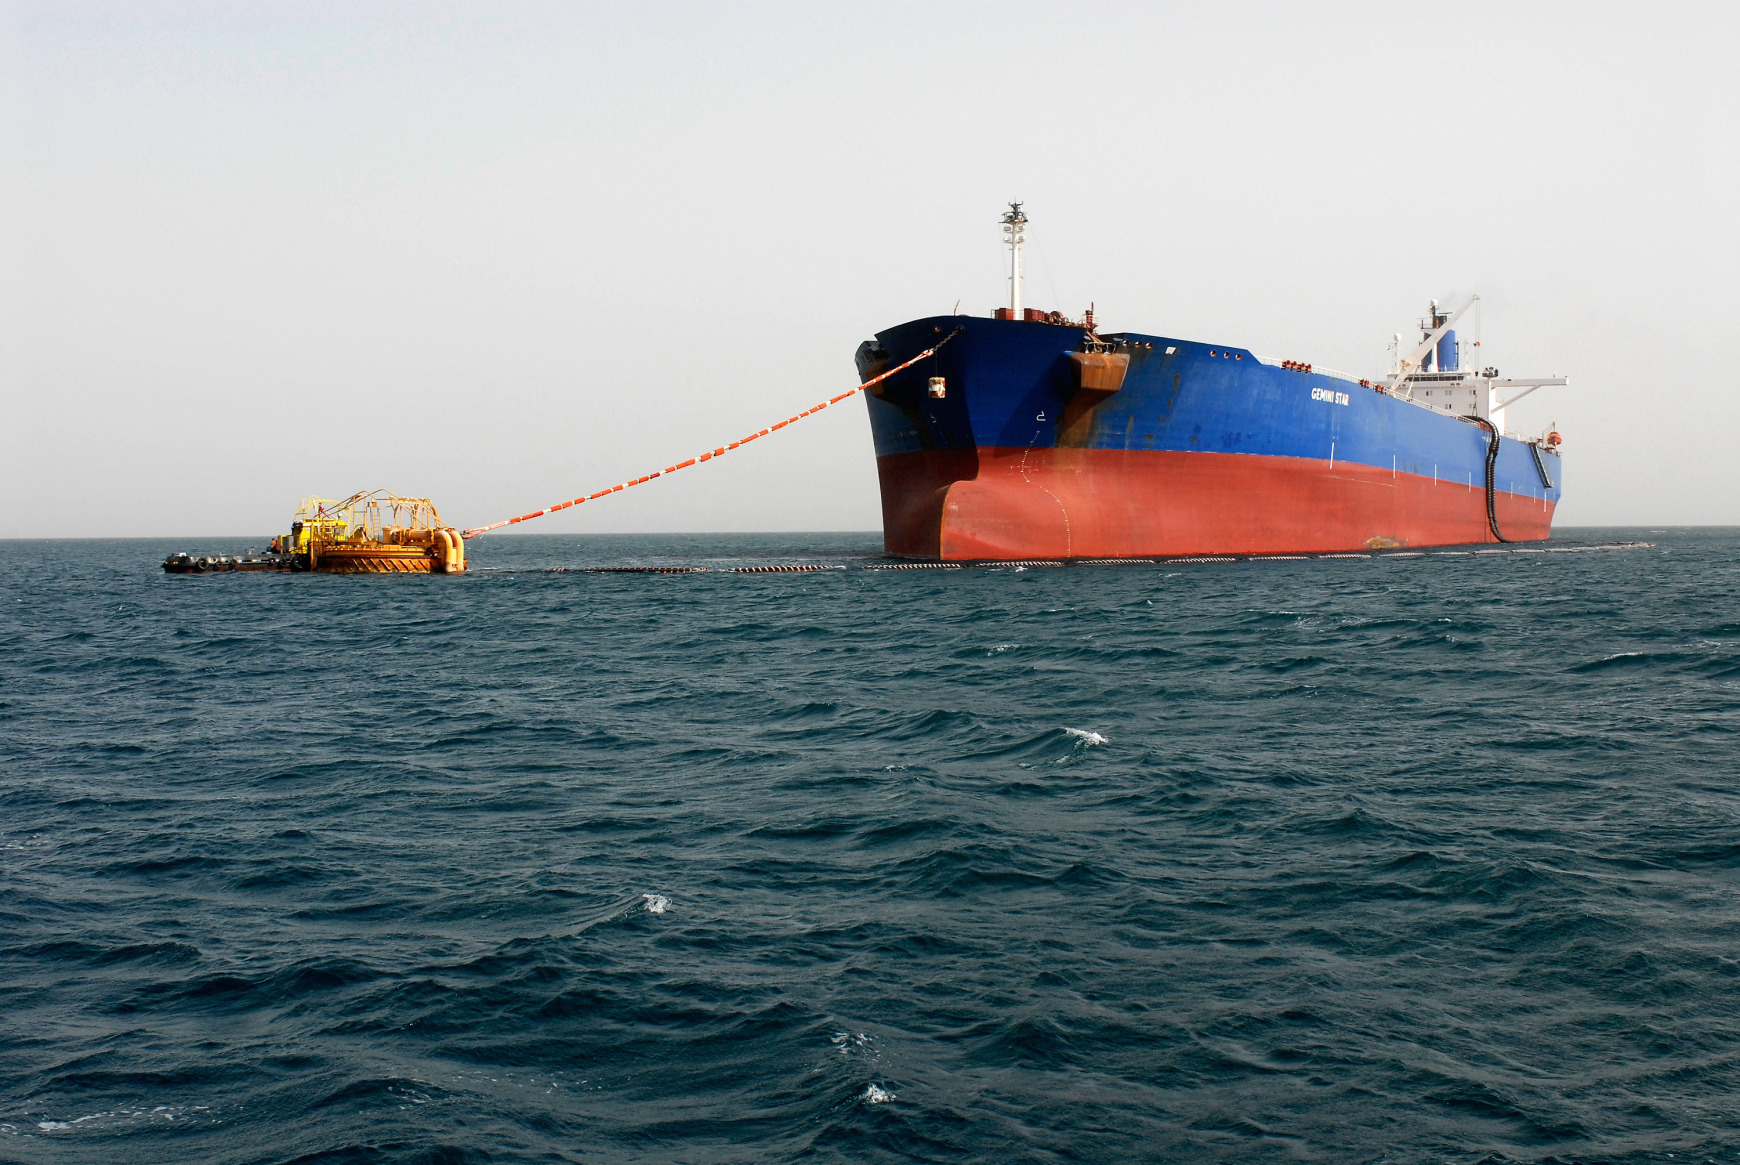 The Gemini Star oil tanker, owned by Vela International Marine, a subsidiary of Saudi Aramco, offloads into a single buoy mooring at the start of the Sumed pipeline in the Gulf of Suez, near the port of Ain Sukhna, Egypt. Photographer: Dana Smillie/Bloomberg